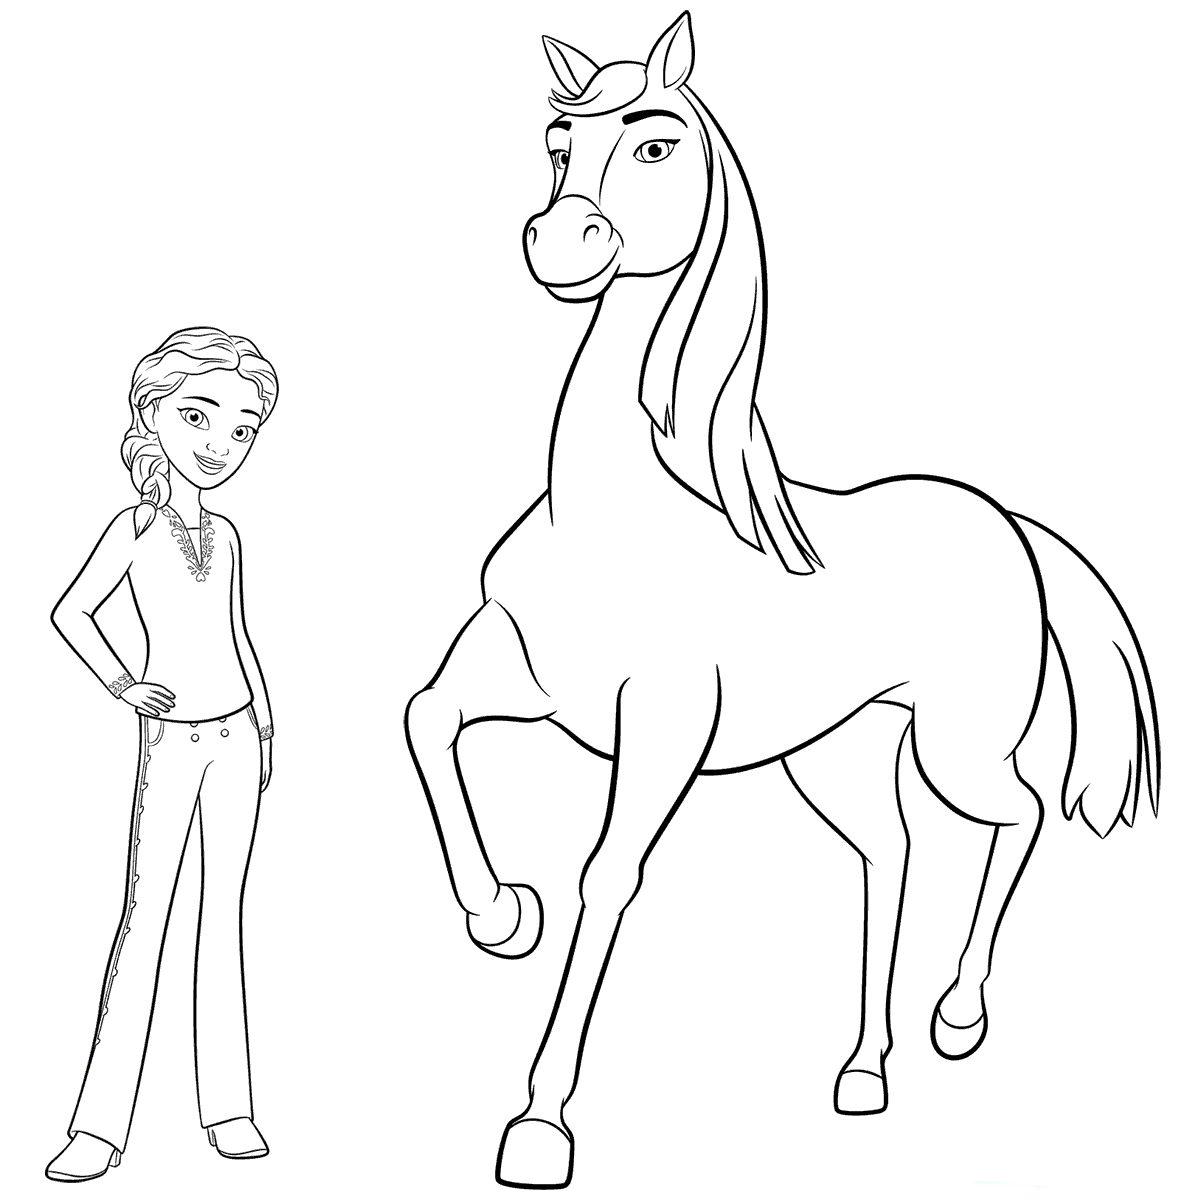 Disney Spirit Horse Coloring Pages | Horse coloring books, Horse ... | 1200x1200